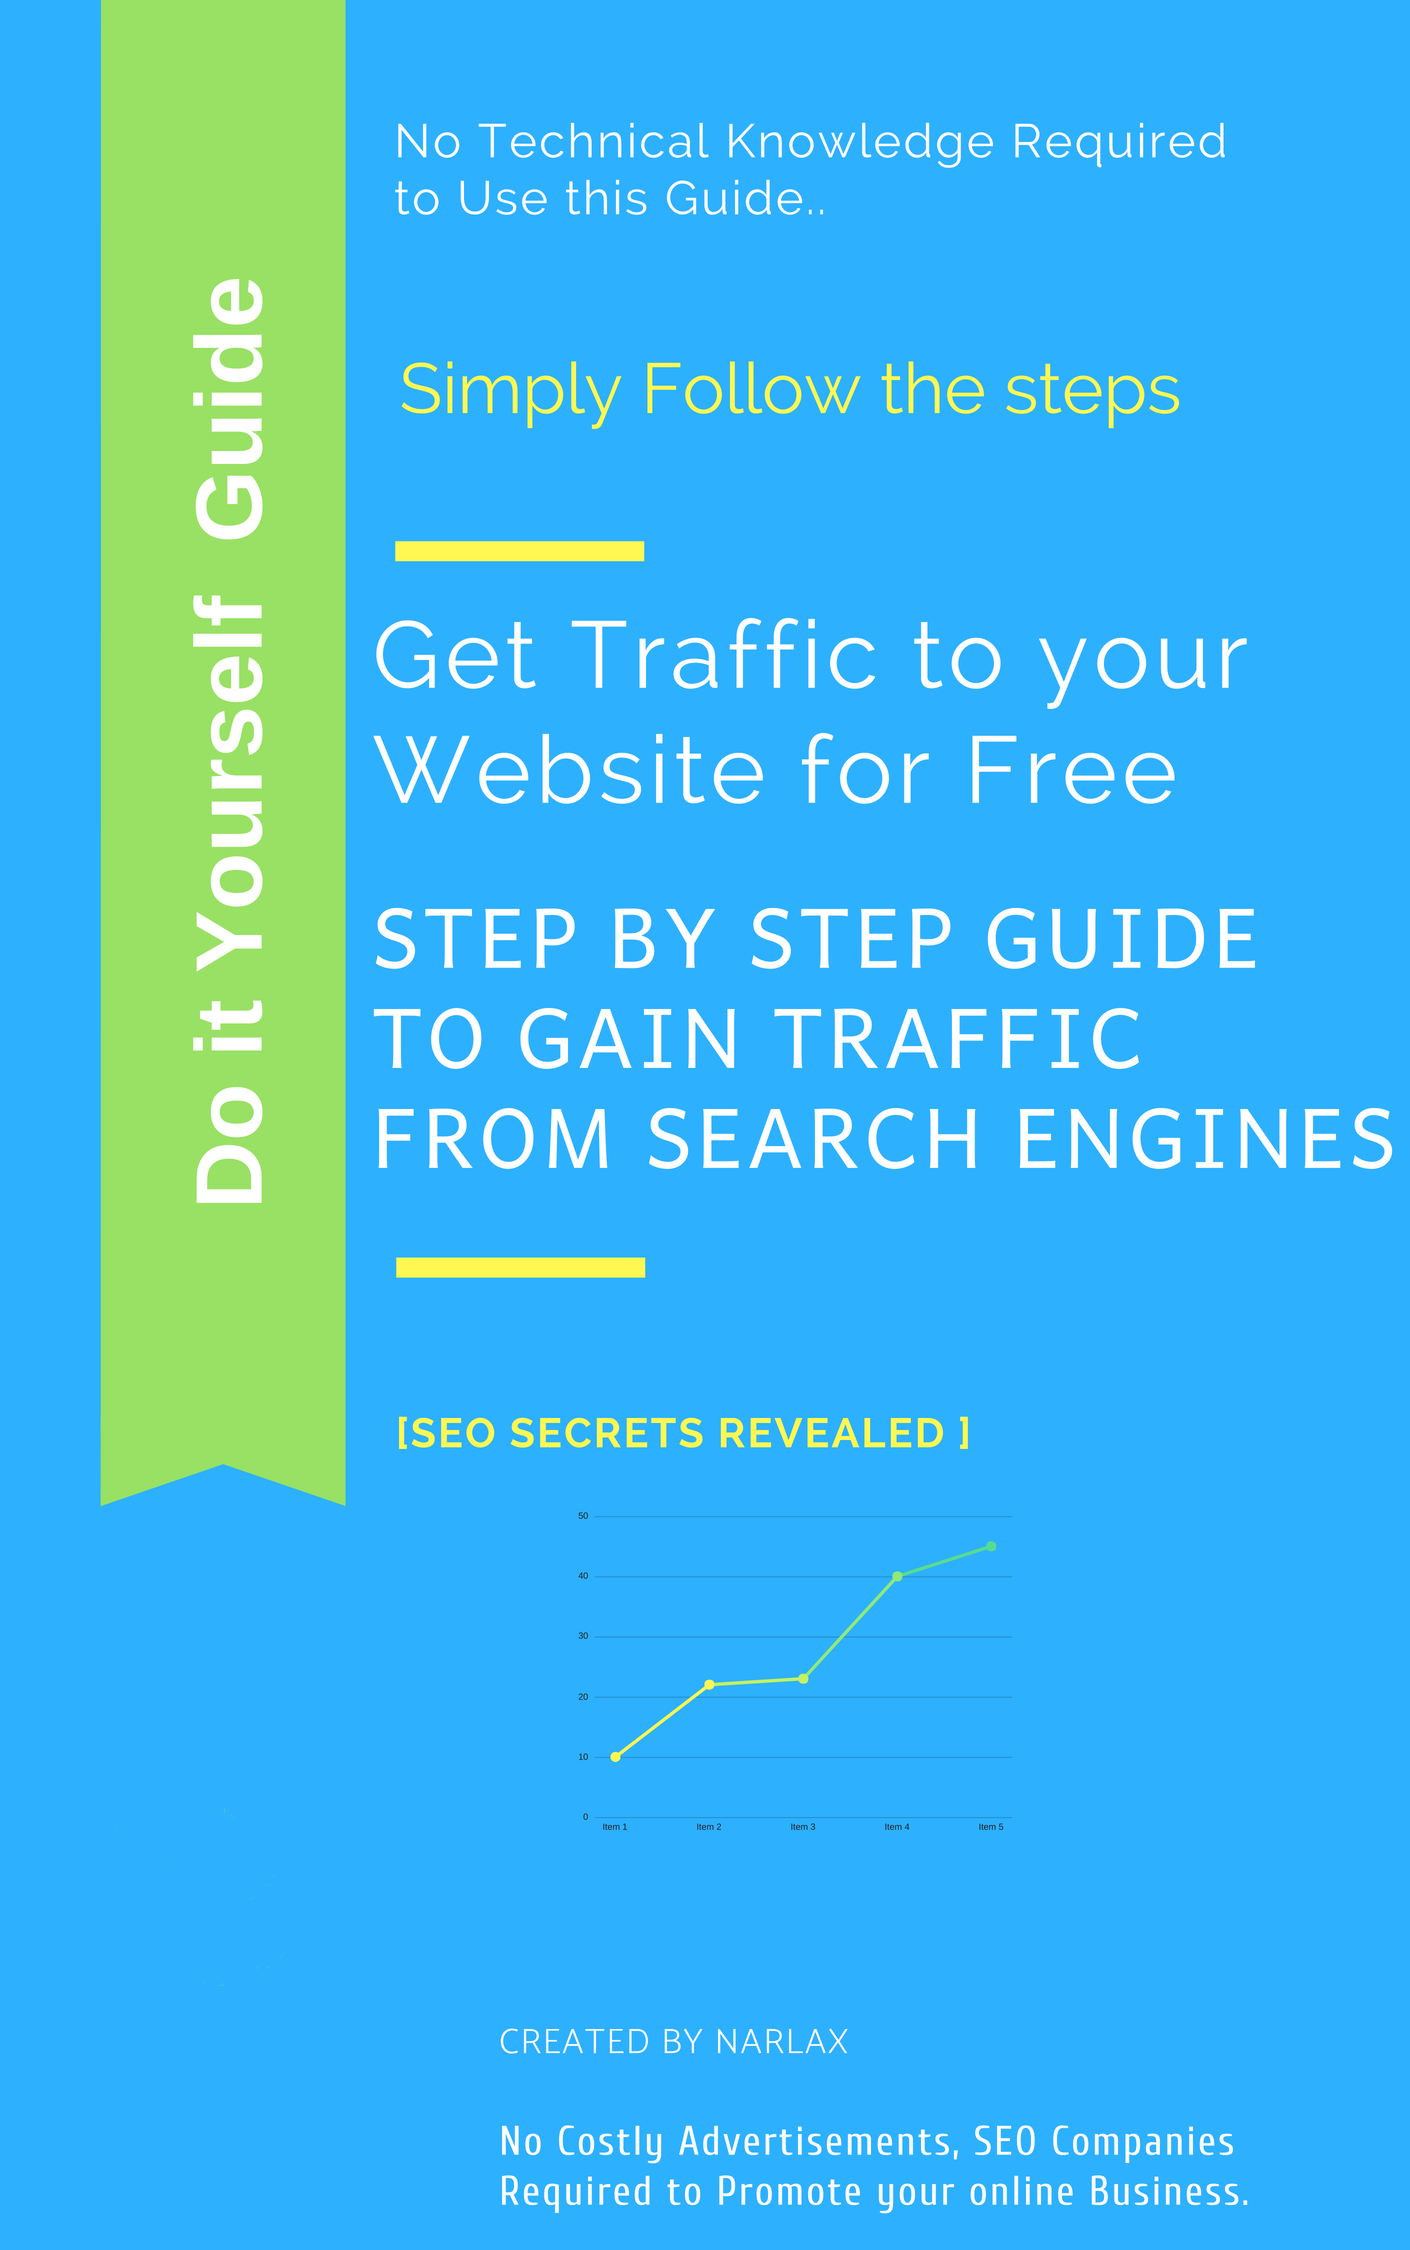 Step by step Guide to promote your website for free